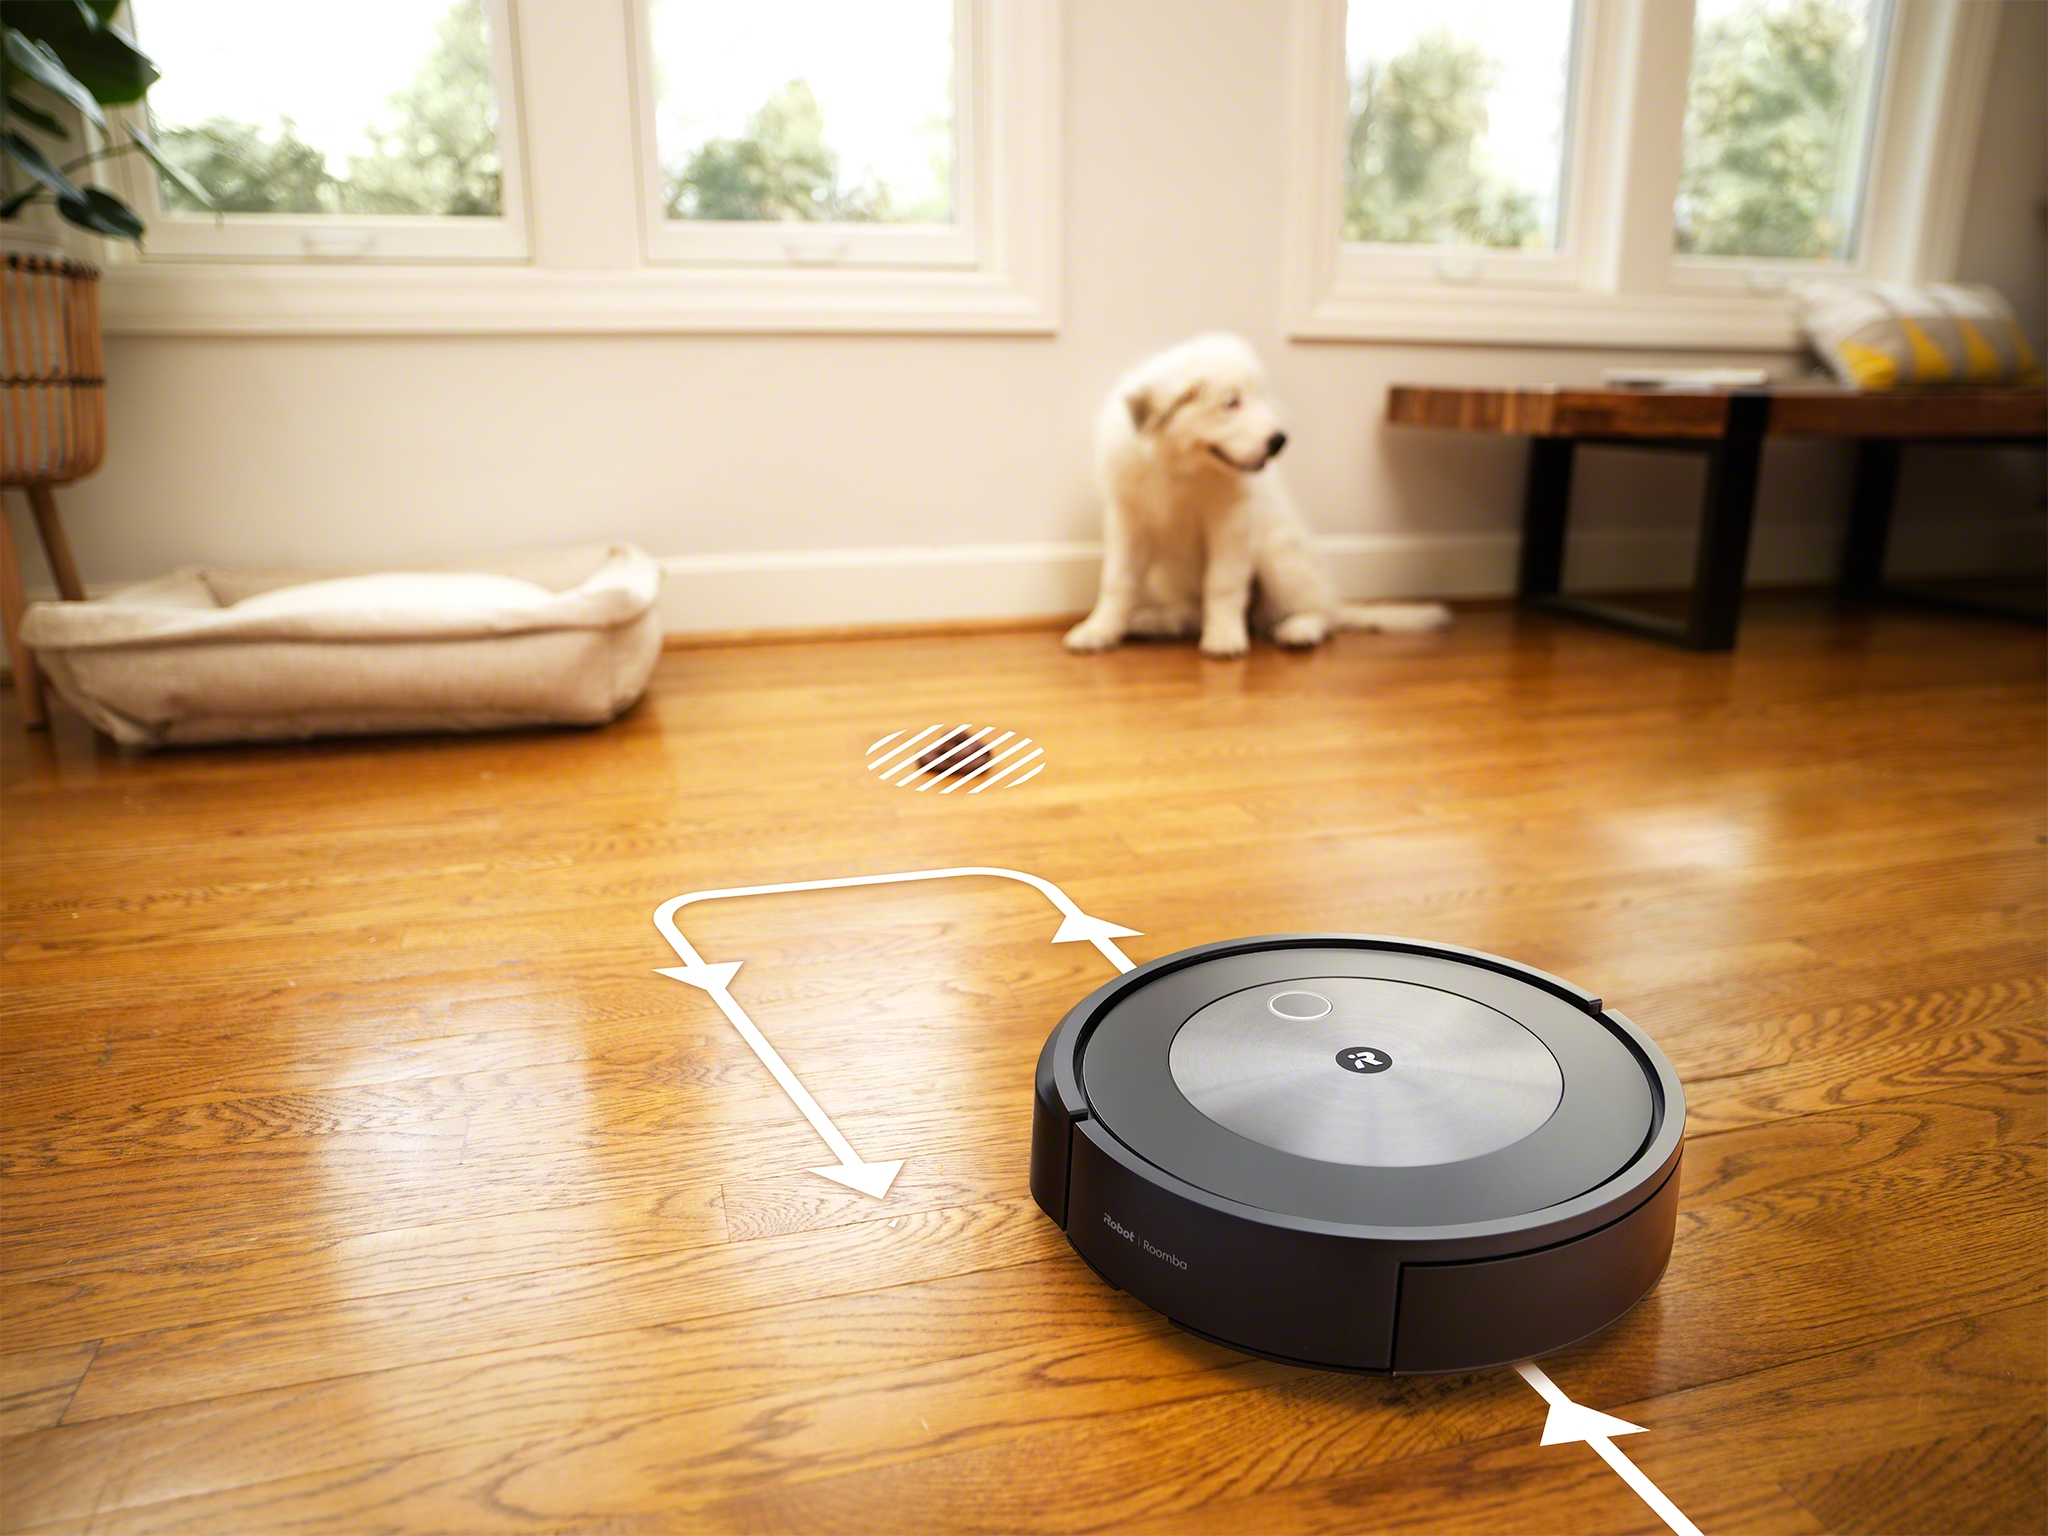 The iRobot Roomba j7+ reacts to objects in the home with PrecisionVision Navigation, giving the robot the ability to identify and avoid common obstacles, such as pet waste.